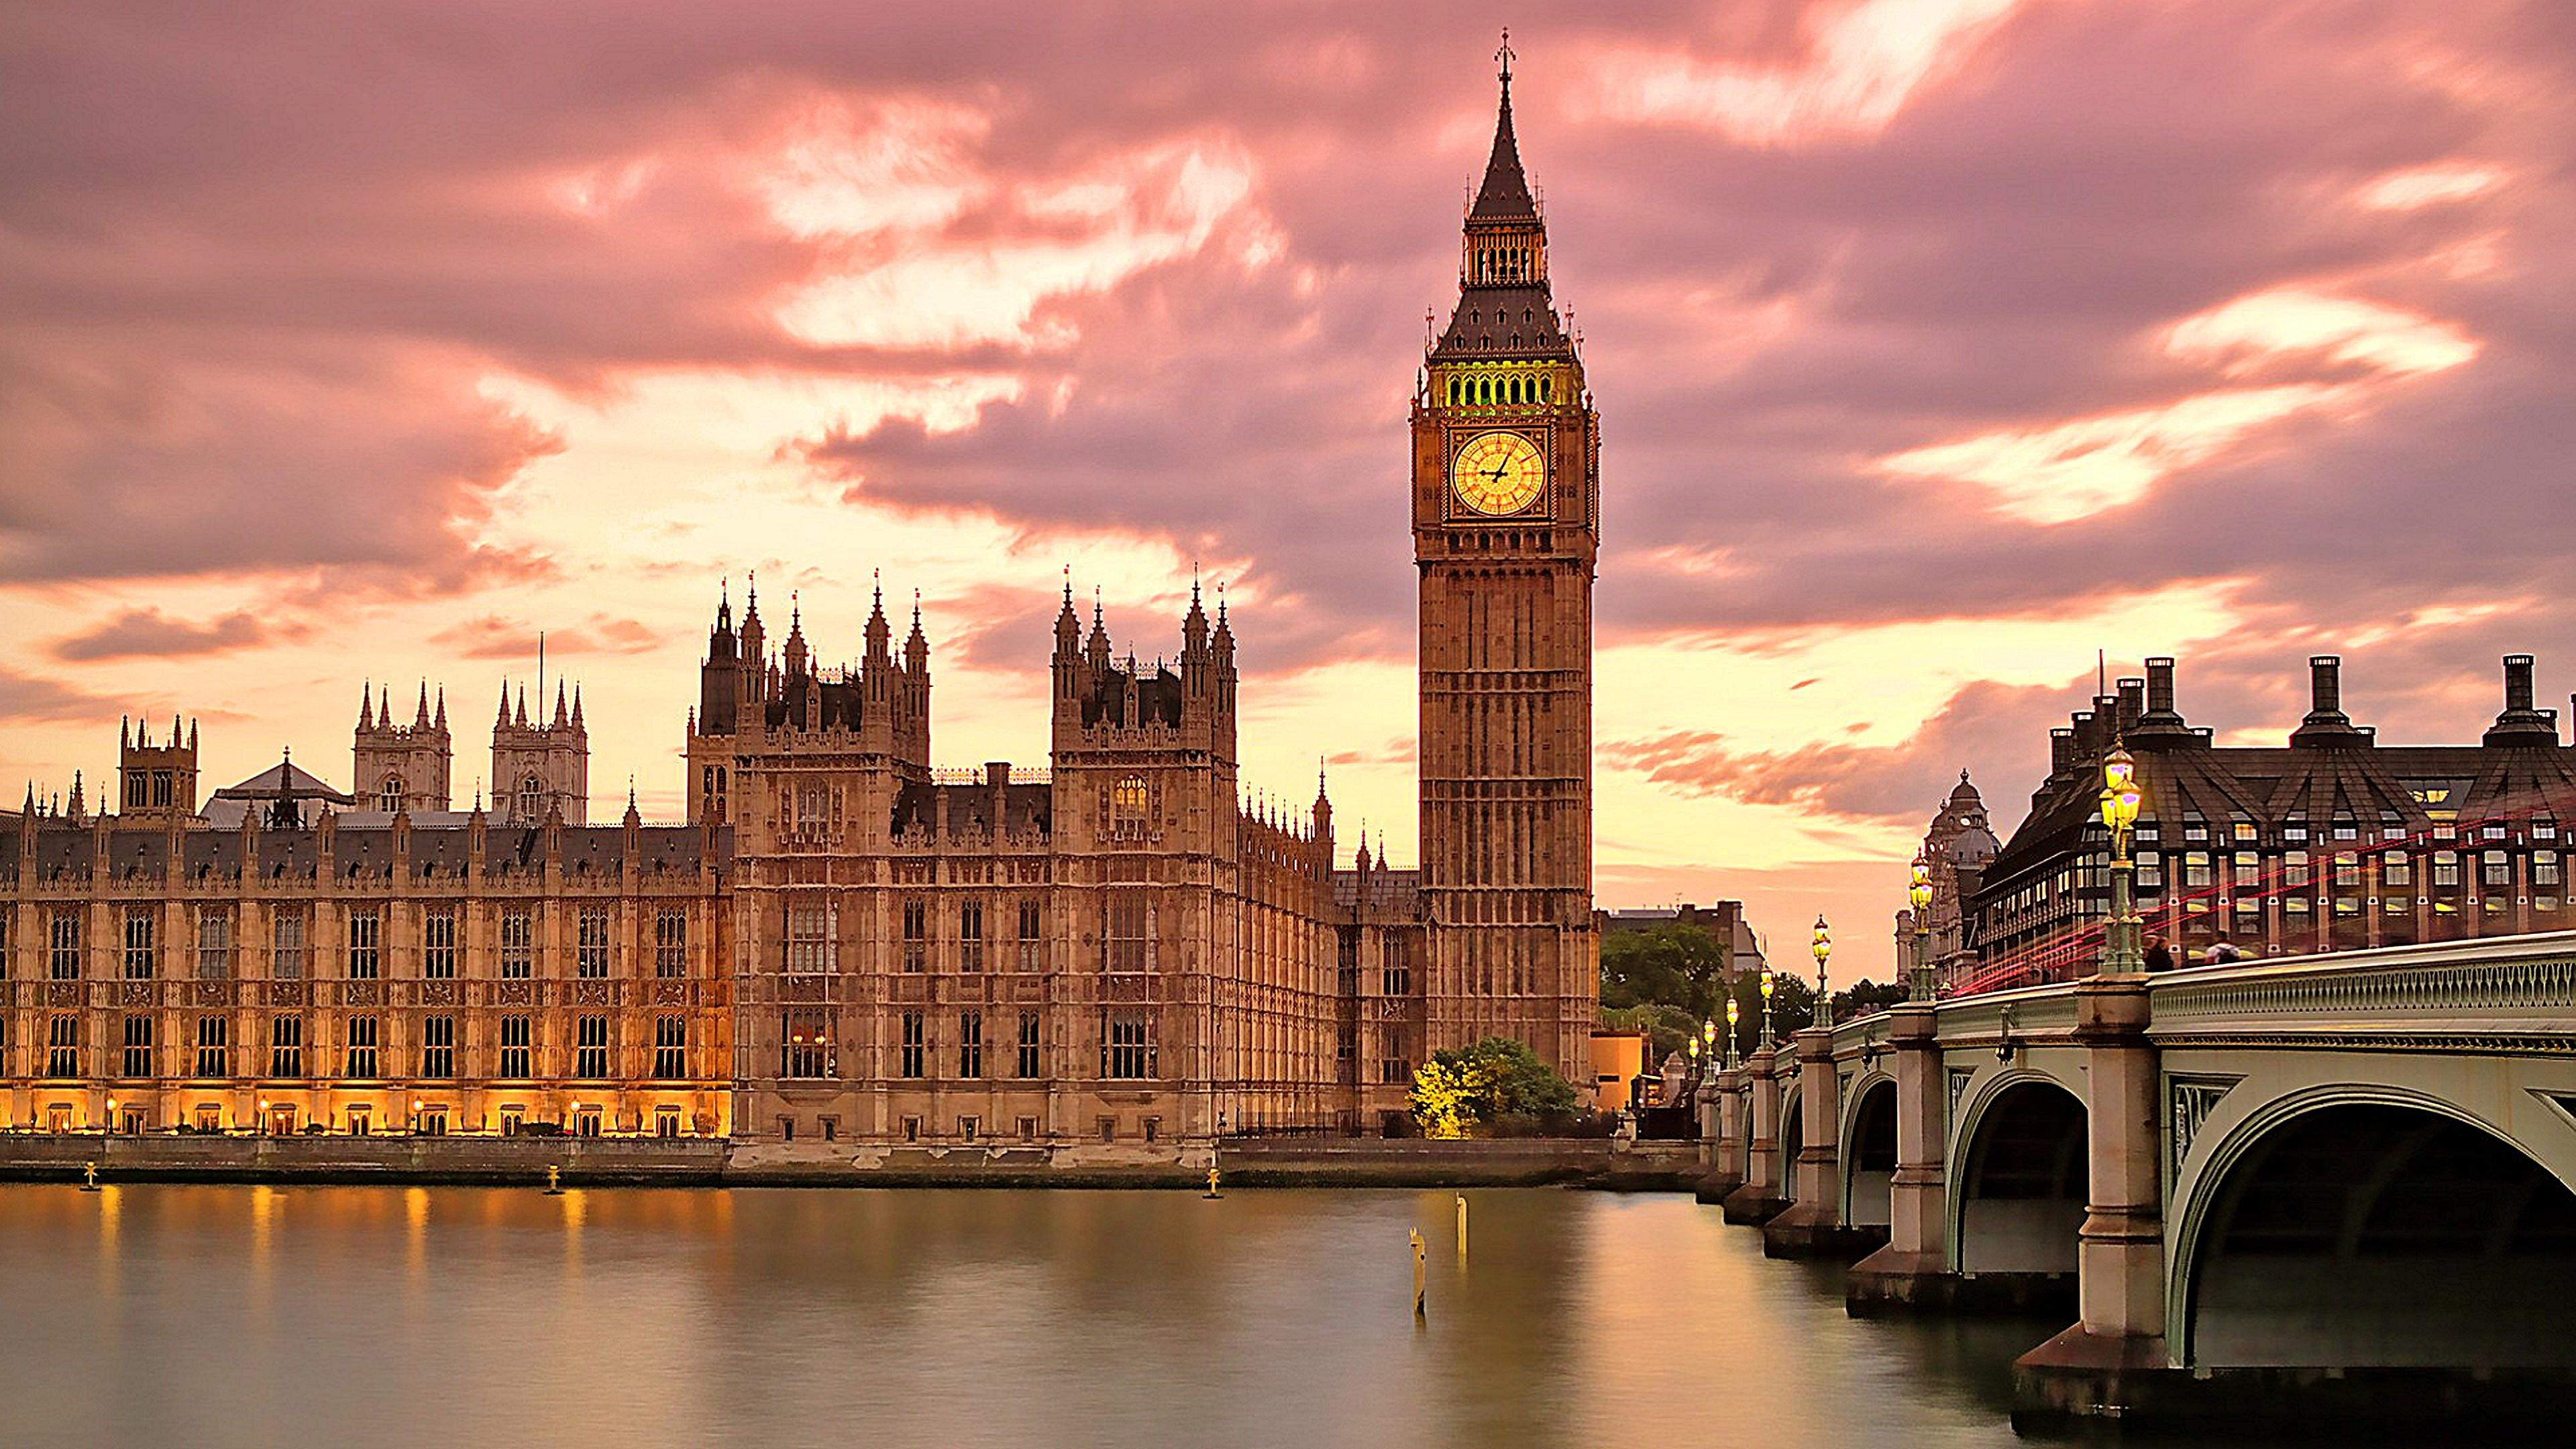 1920x1080 London Wallpaper Houses Of Parliament 115374 Hd Wallpaper Backgrounds Download